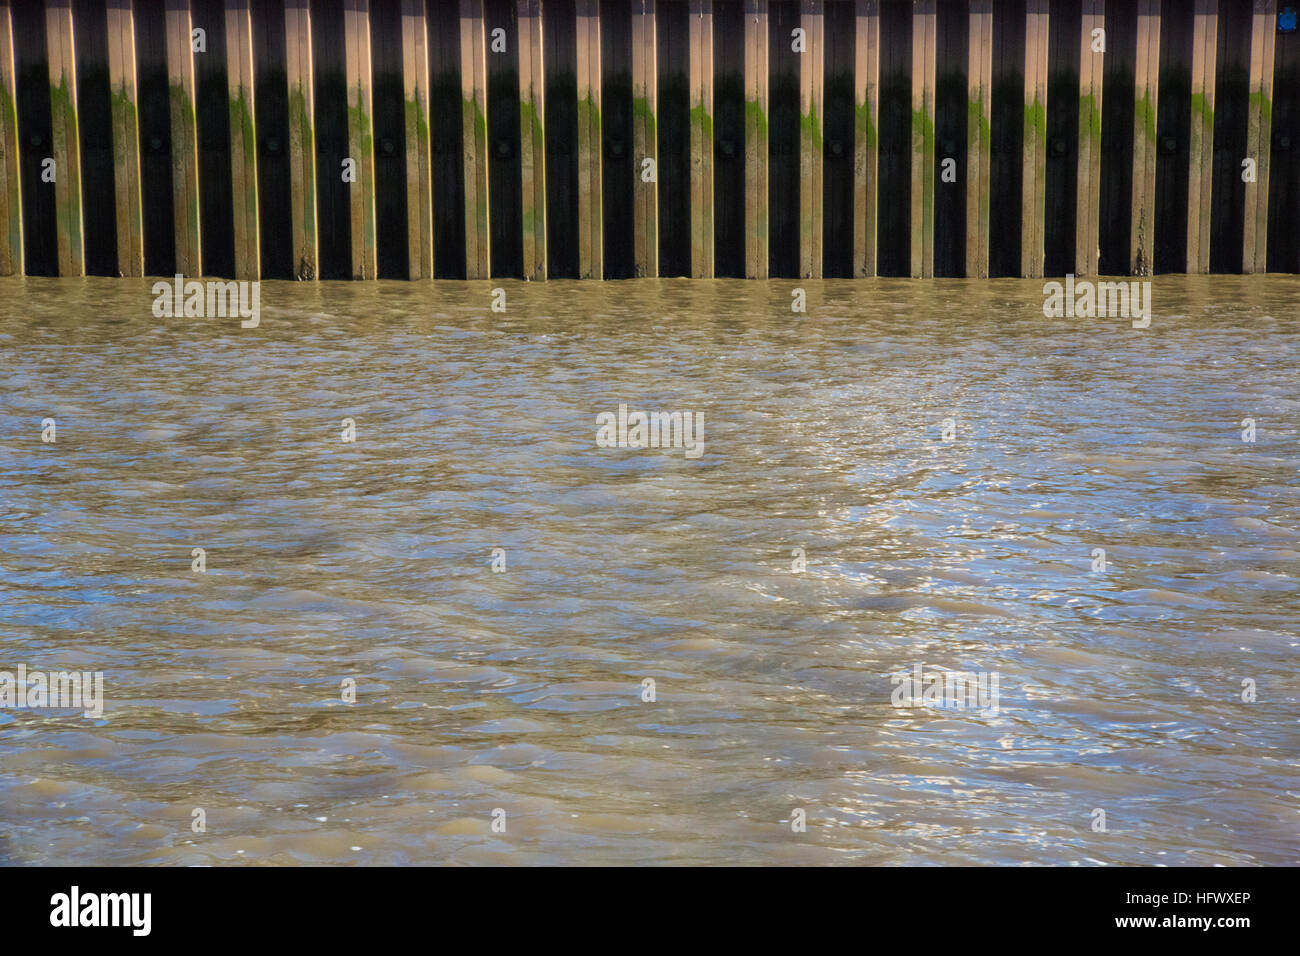 The embankment on the River Thames in London - Stock Image